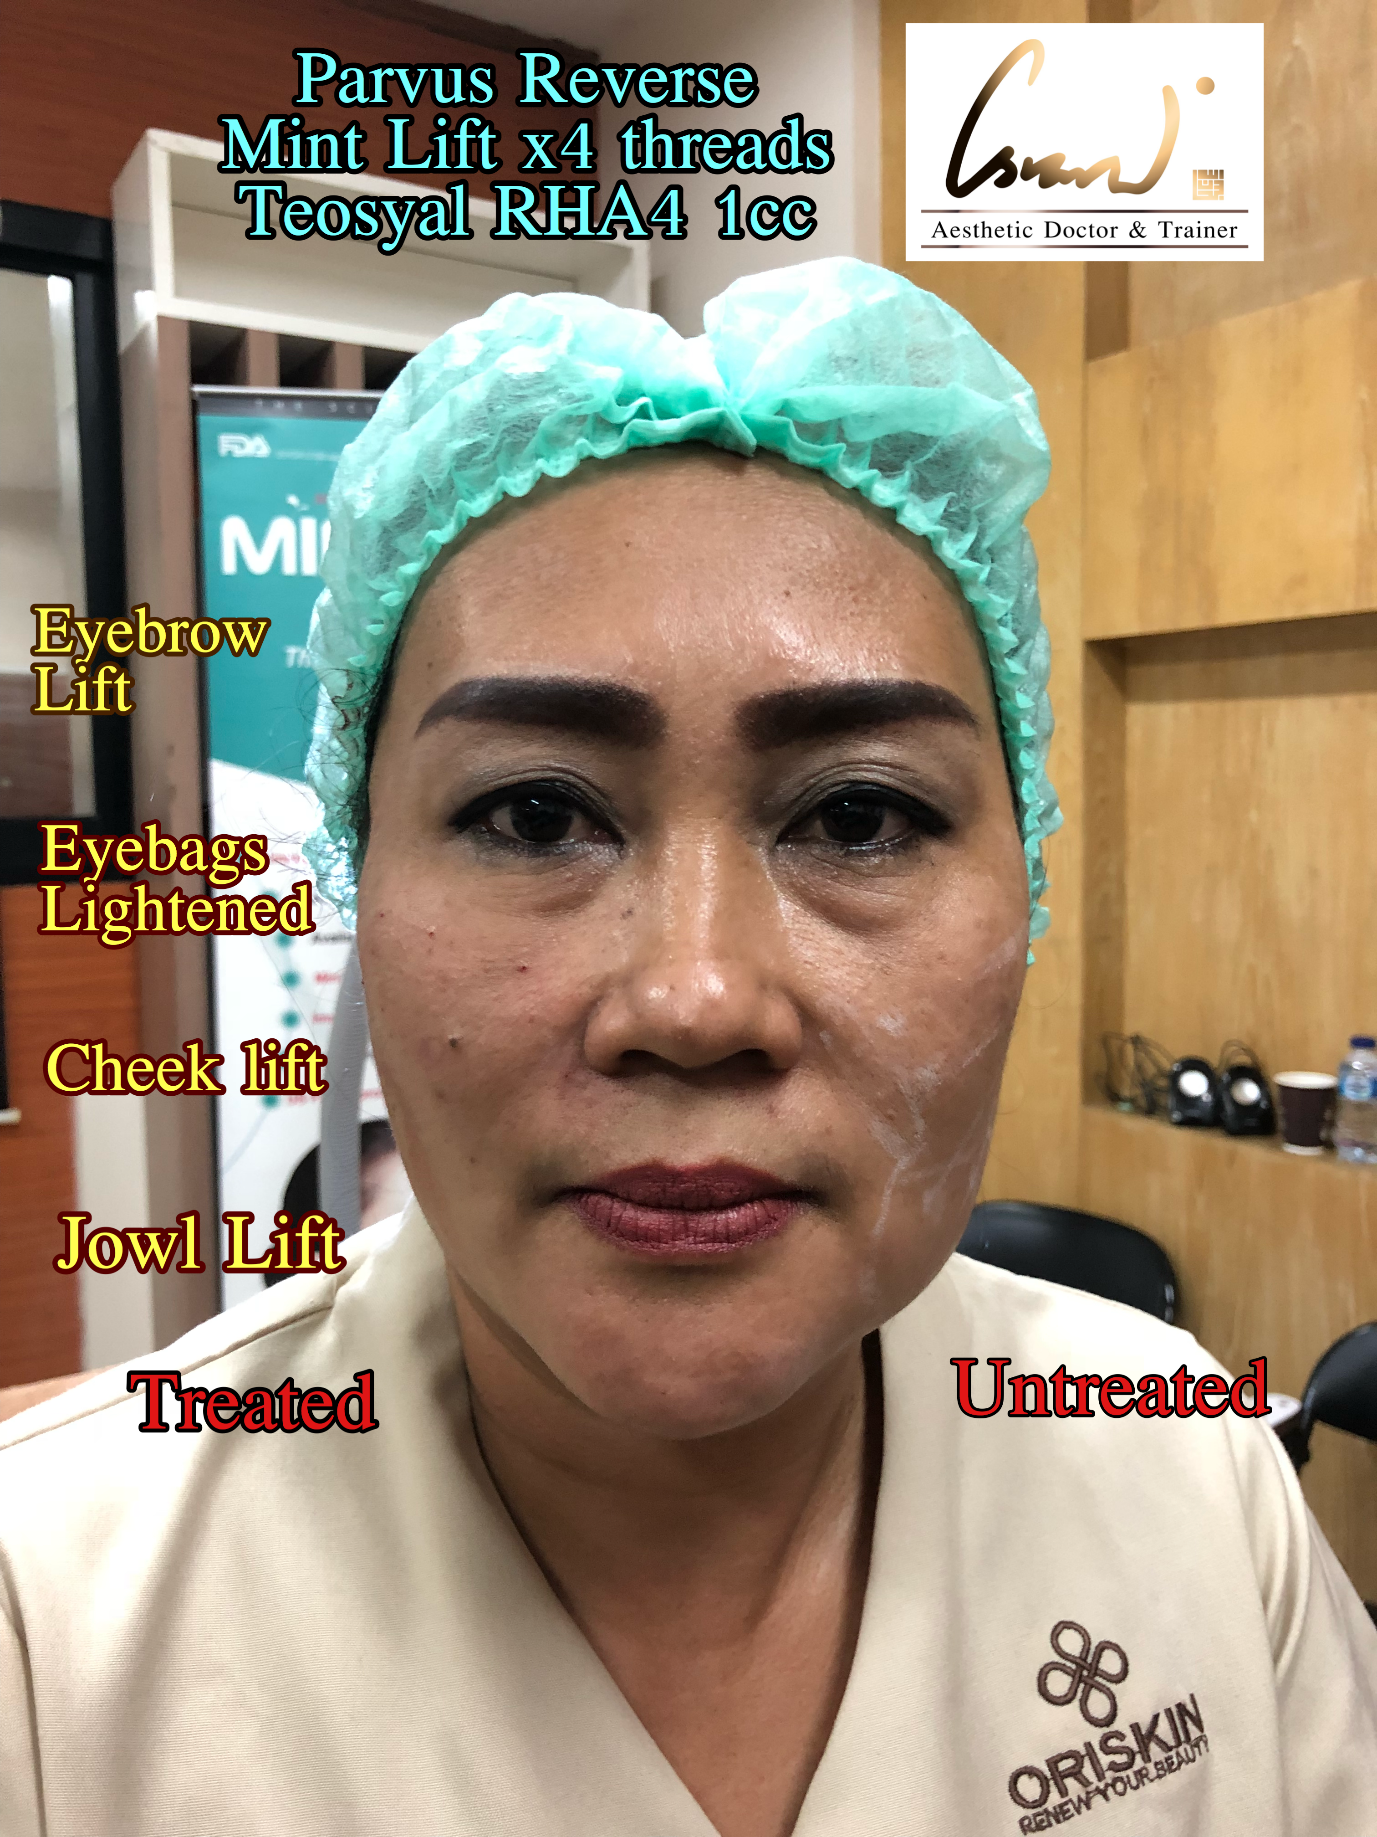 Mint Lift + Teosyal results